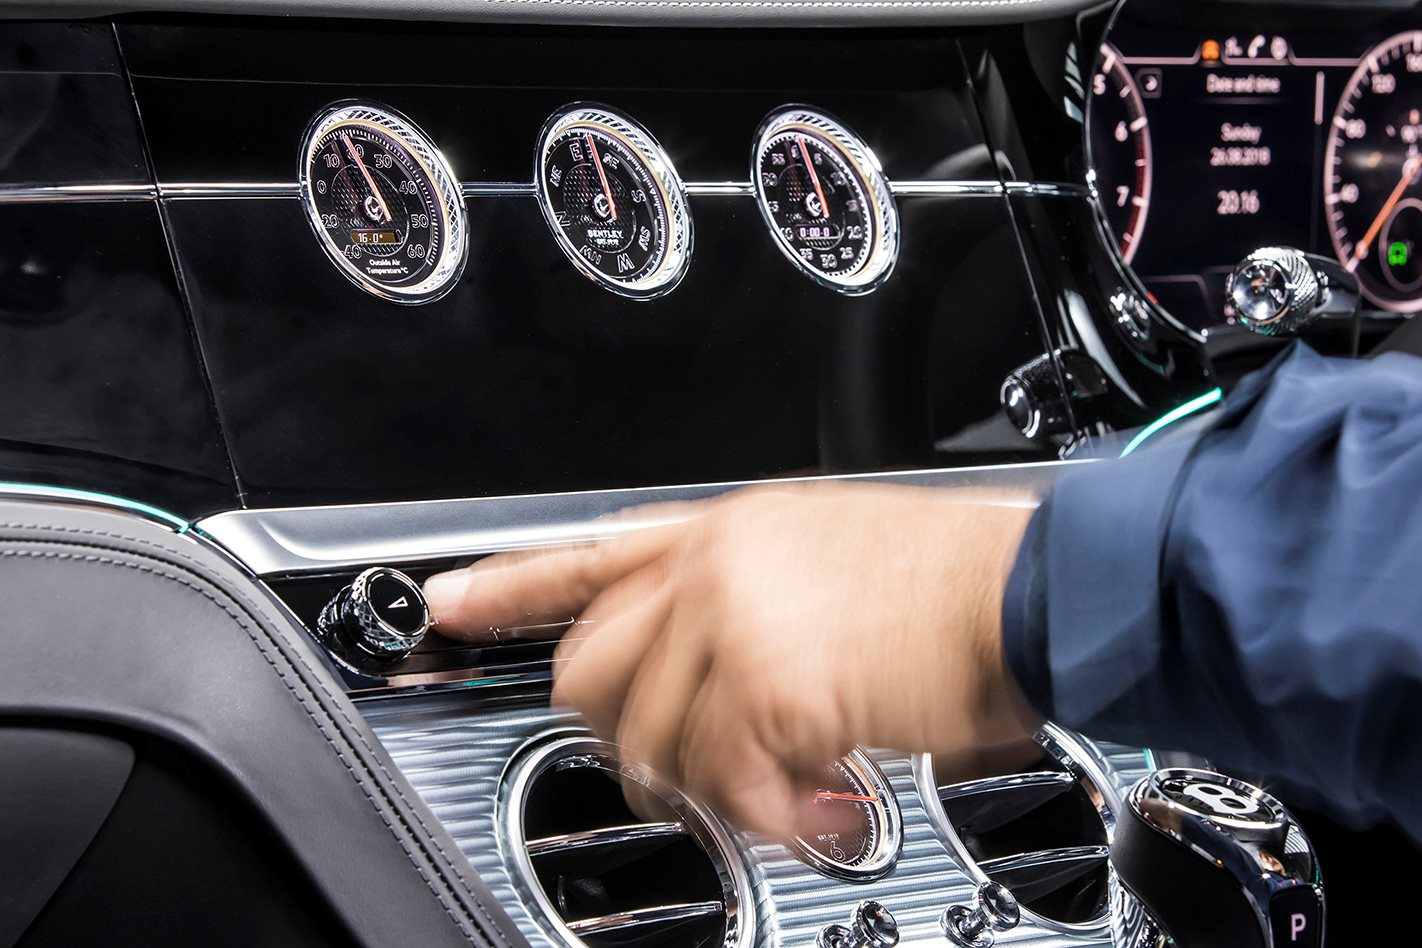 2019 Bentley Continental Gt W12 Review Home Switches 4 Way By Now Youve Probably Figured Out That Price Before On Roads Of Most Conti W12s Is Going To Start With A 5 Rather Than And Buyers Will Also